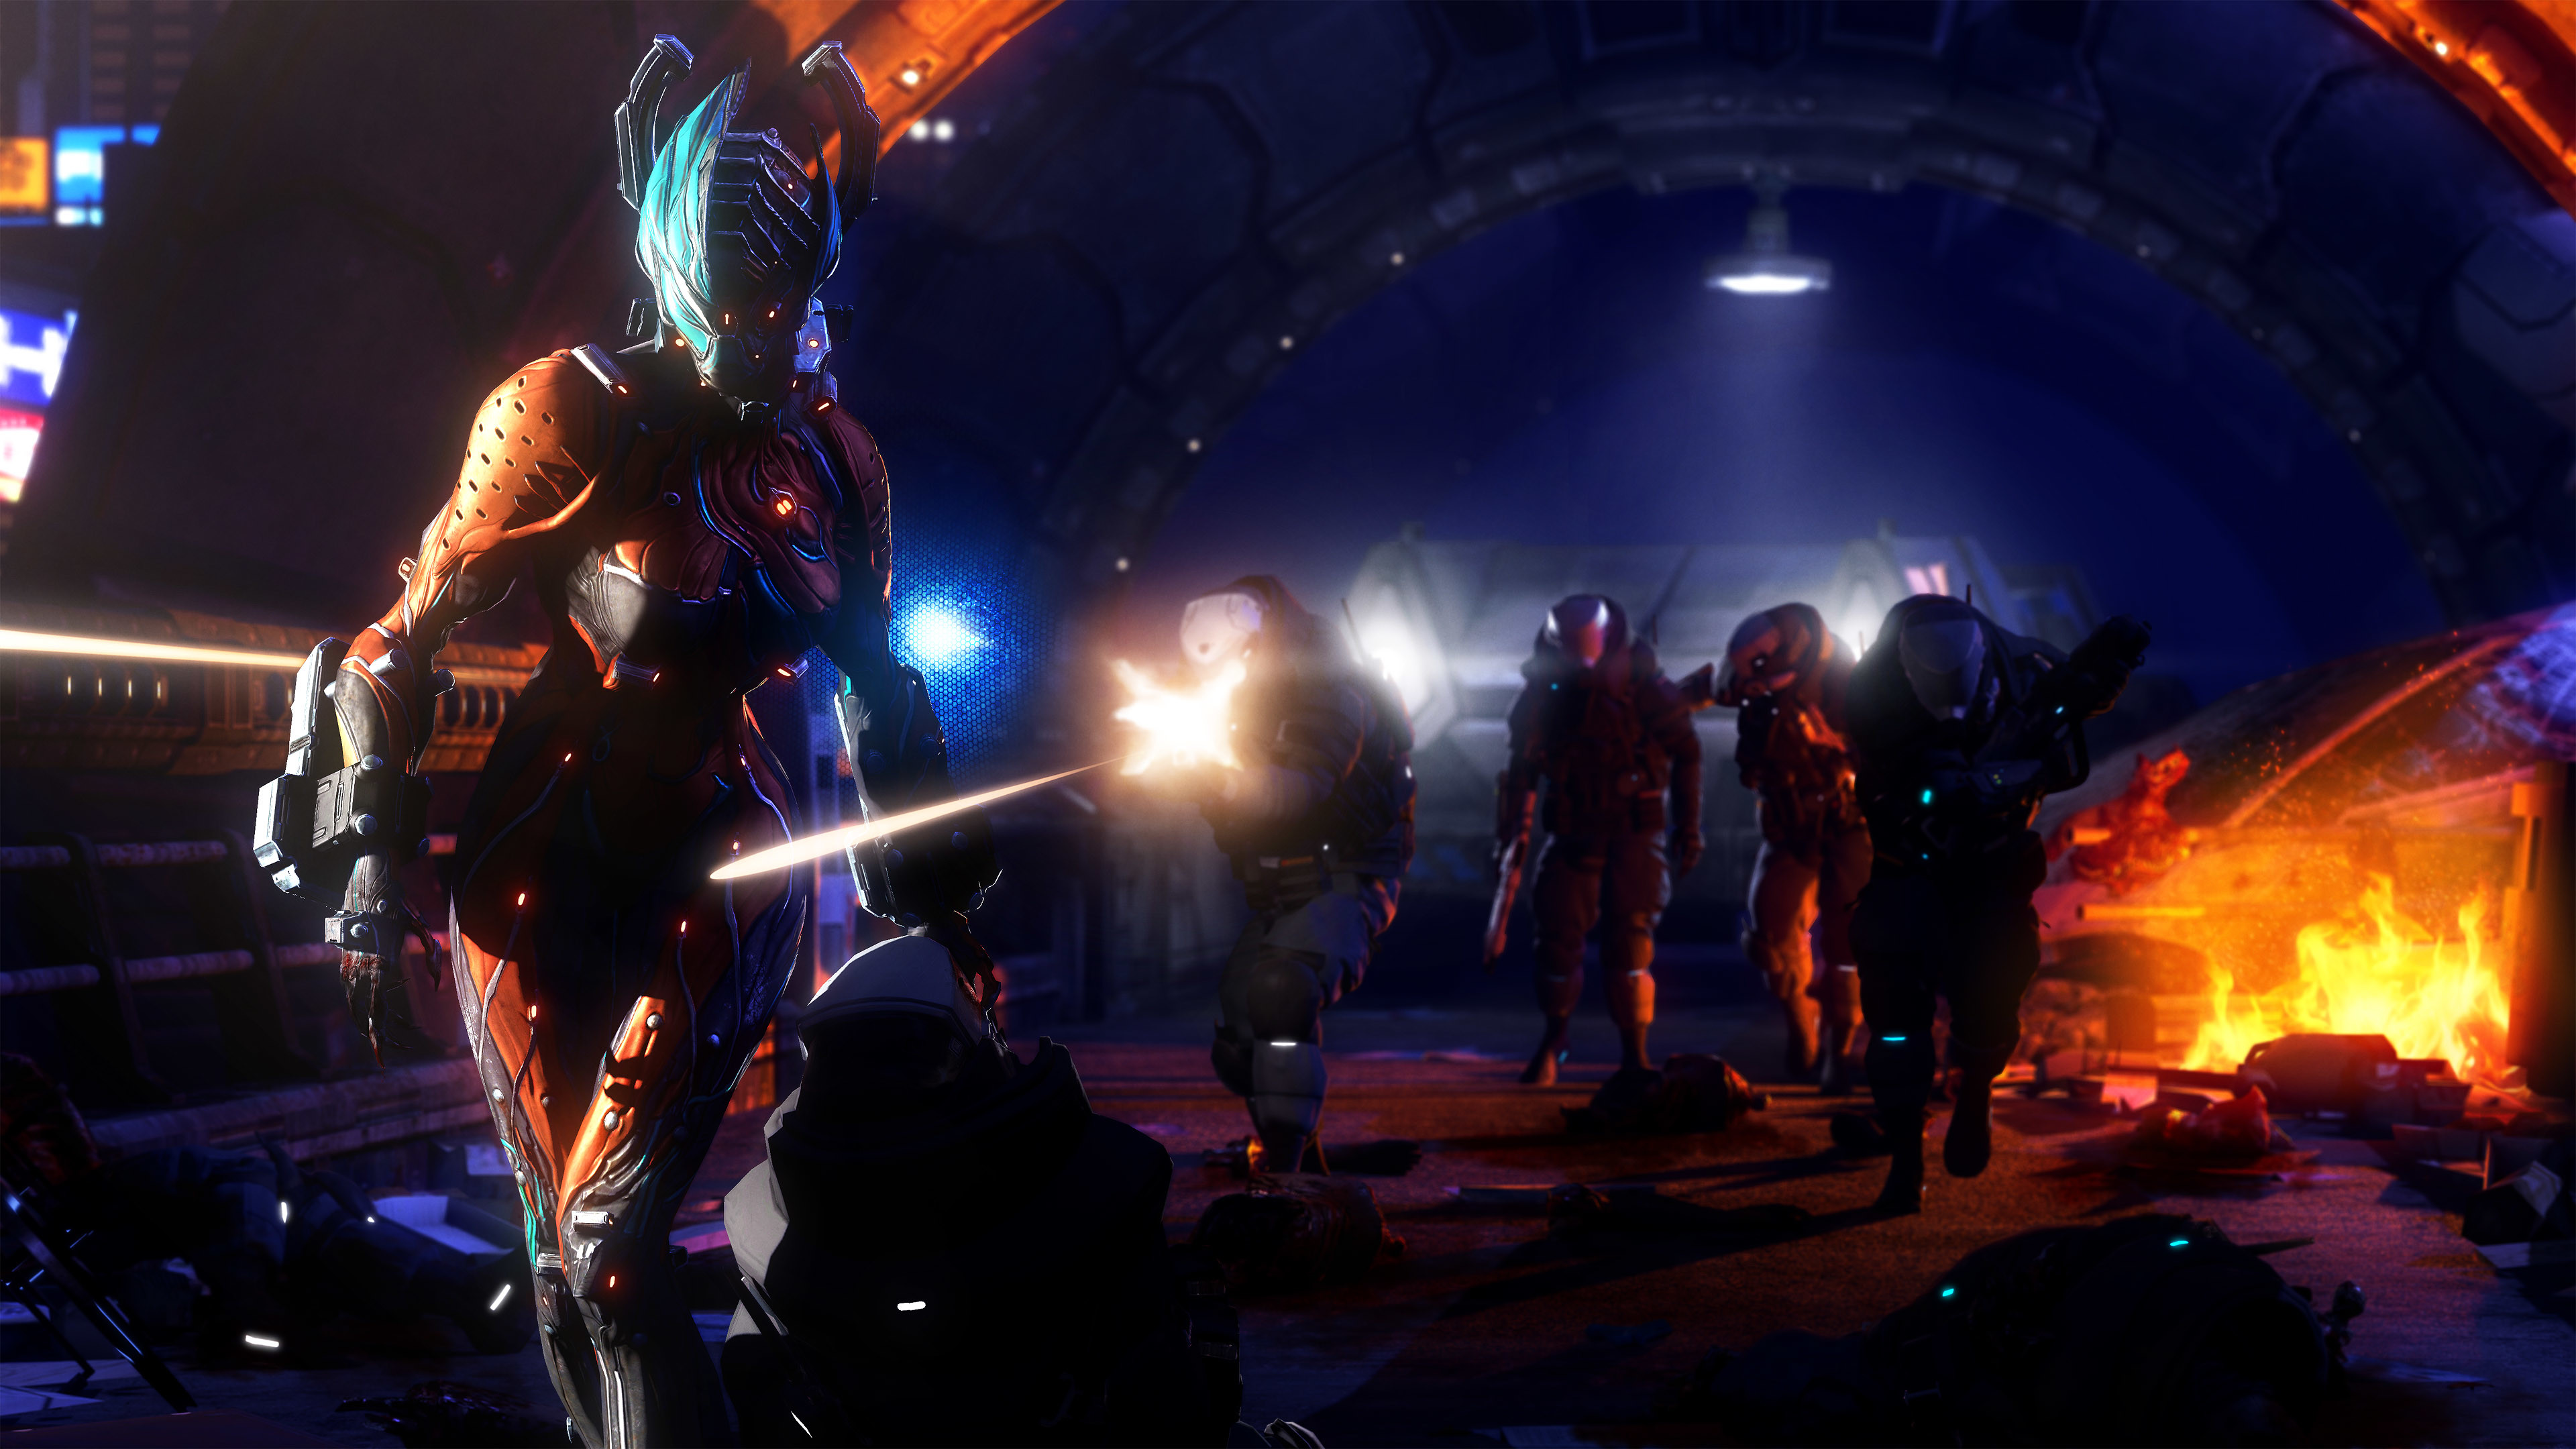 warframe___immutable_madness_by_squiddyt